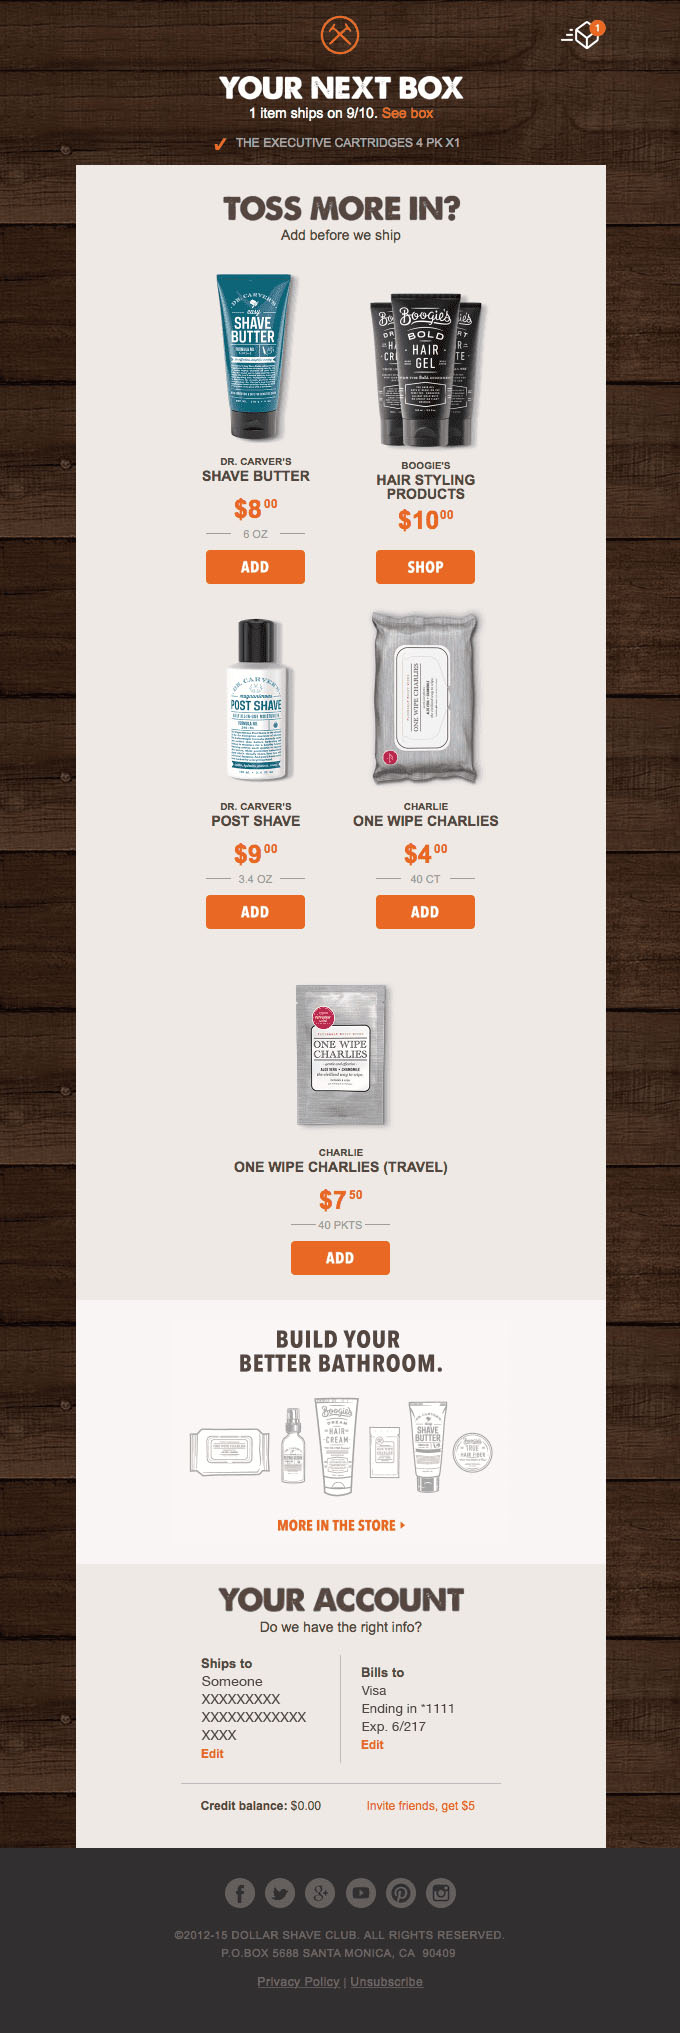 Onboarding Emails - Upsell Email - Dollar Shave Club